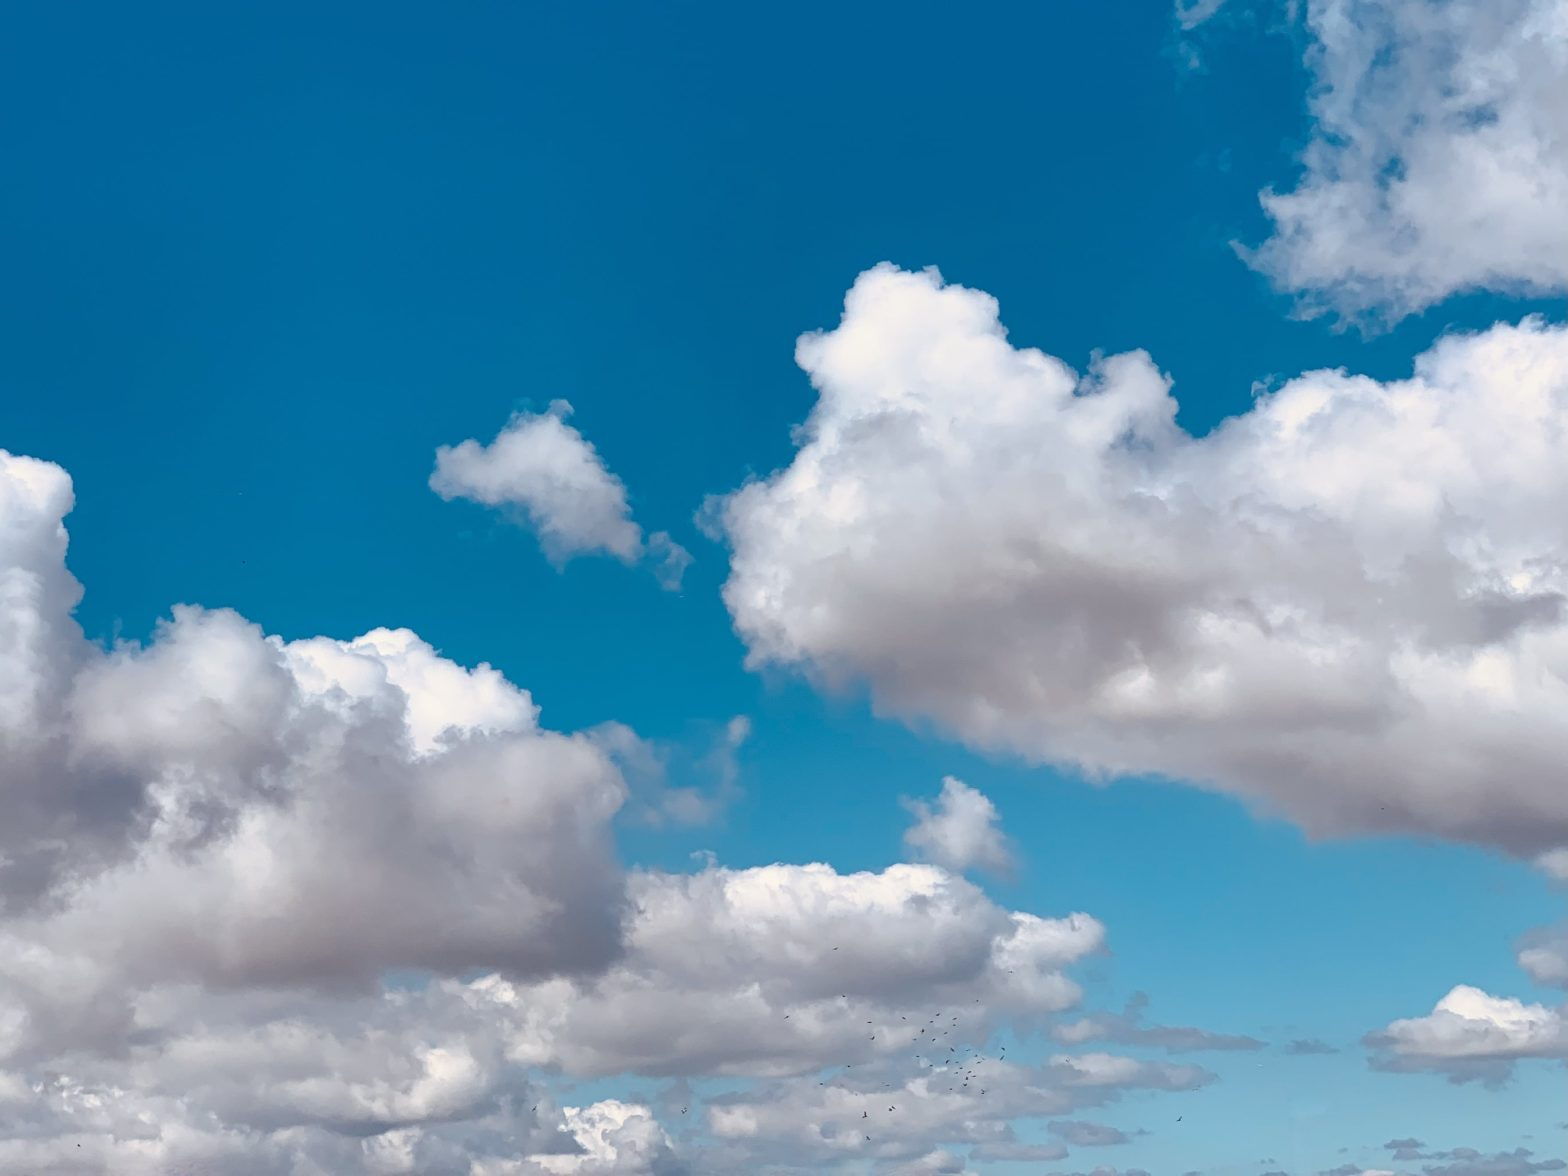 Clouds in the bright blue sky with a flock of birds flying through